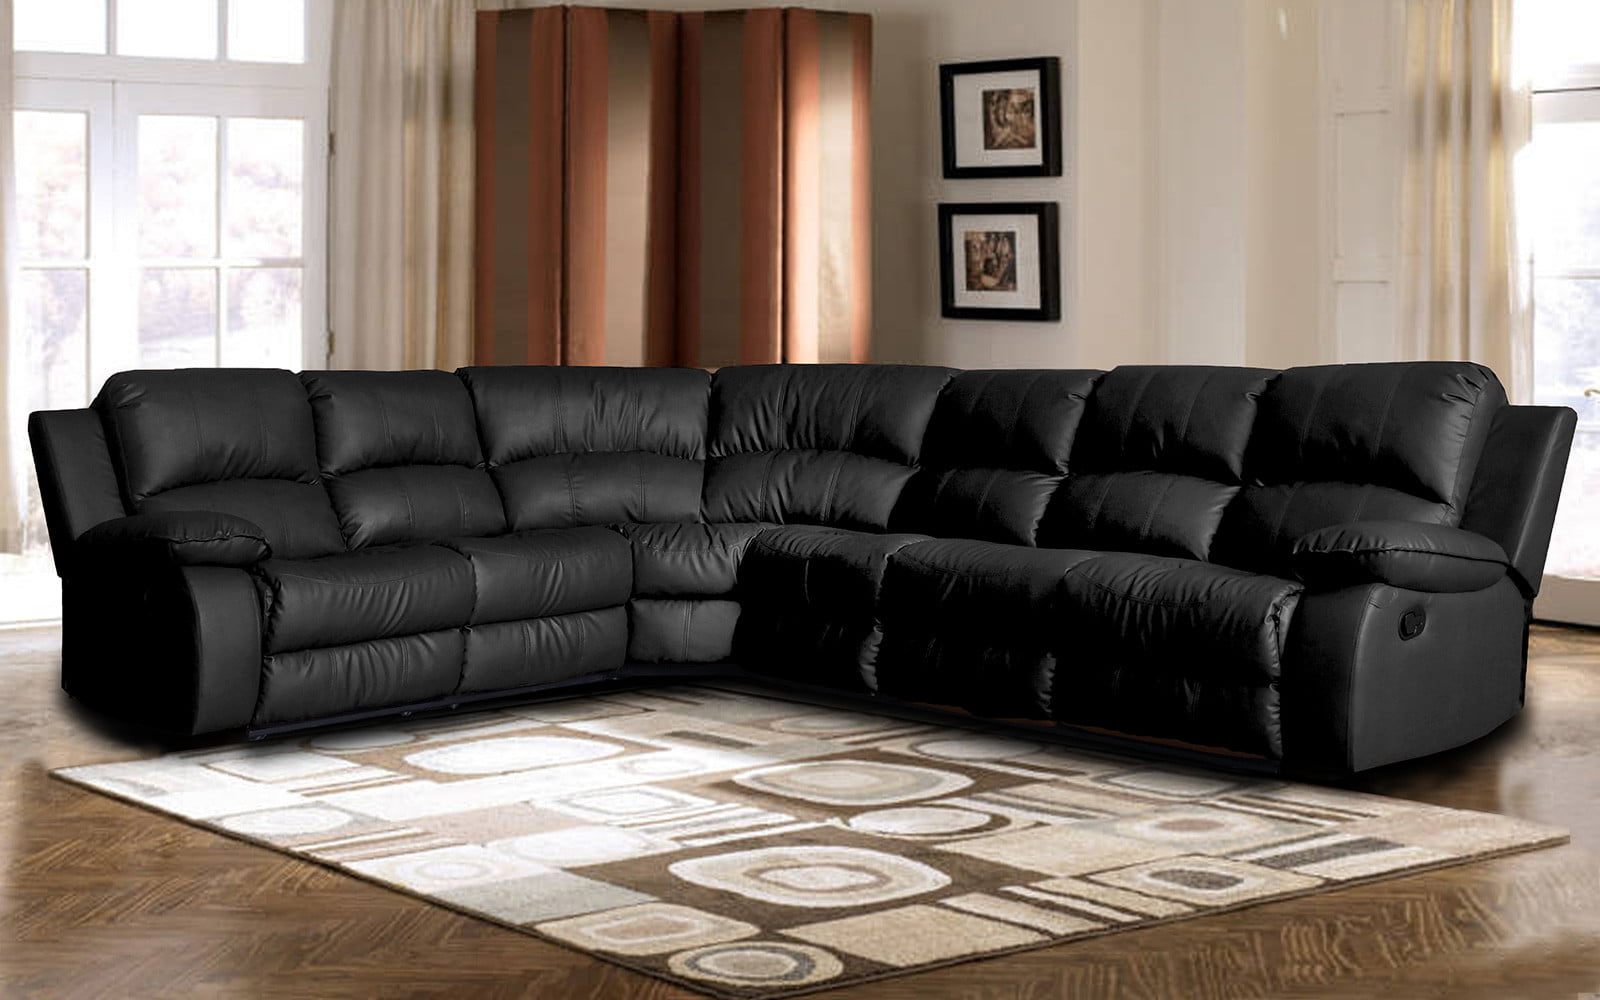 Prime Classic Oversize And Overstuffed Corner Bonded Leather Sectional With 2 Reclining Seats Walmart Com Forskolin Free Trial Chair Design Images Forskolin Free Trialorg